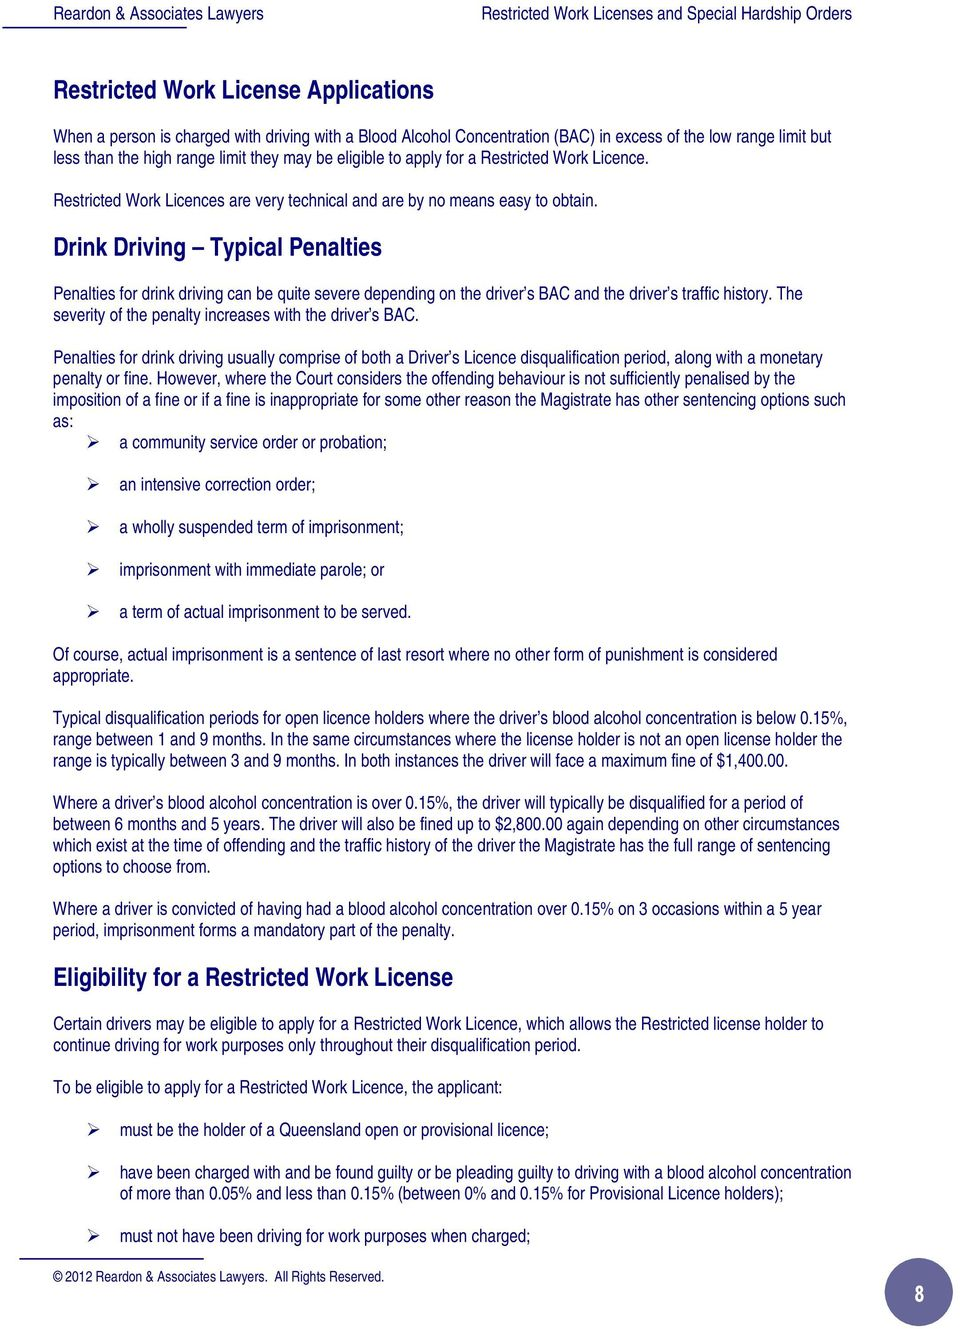 Drink Driving Typical Penalties Penalties for drink driving can be quite severe depending on the driver s BAC and the driver s traffic history.